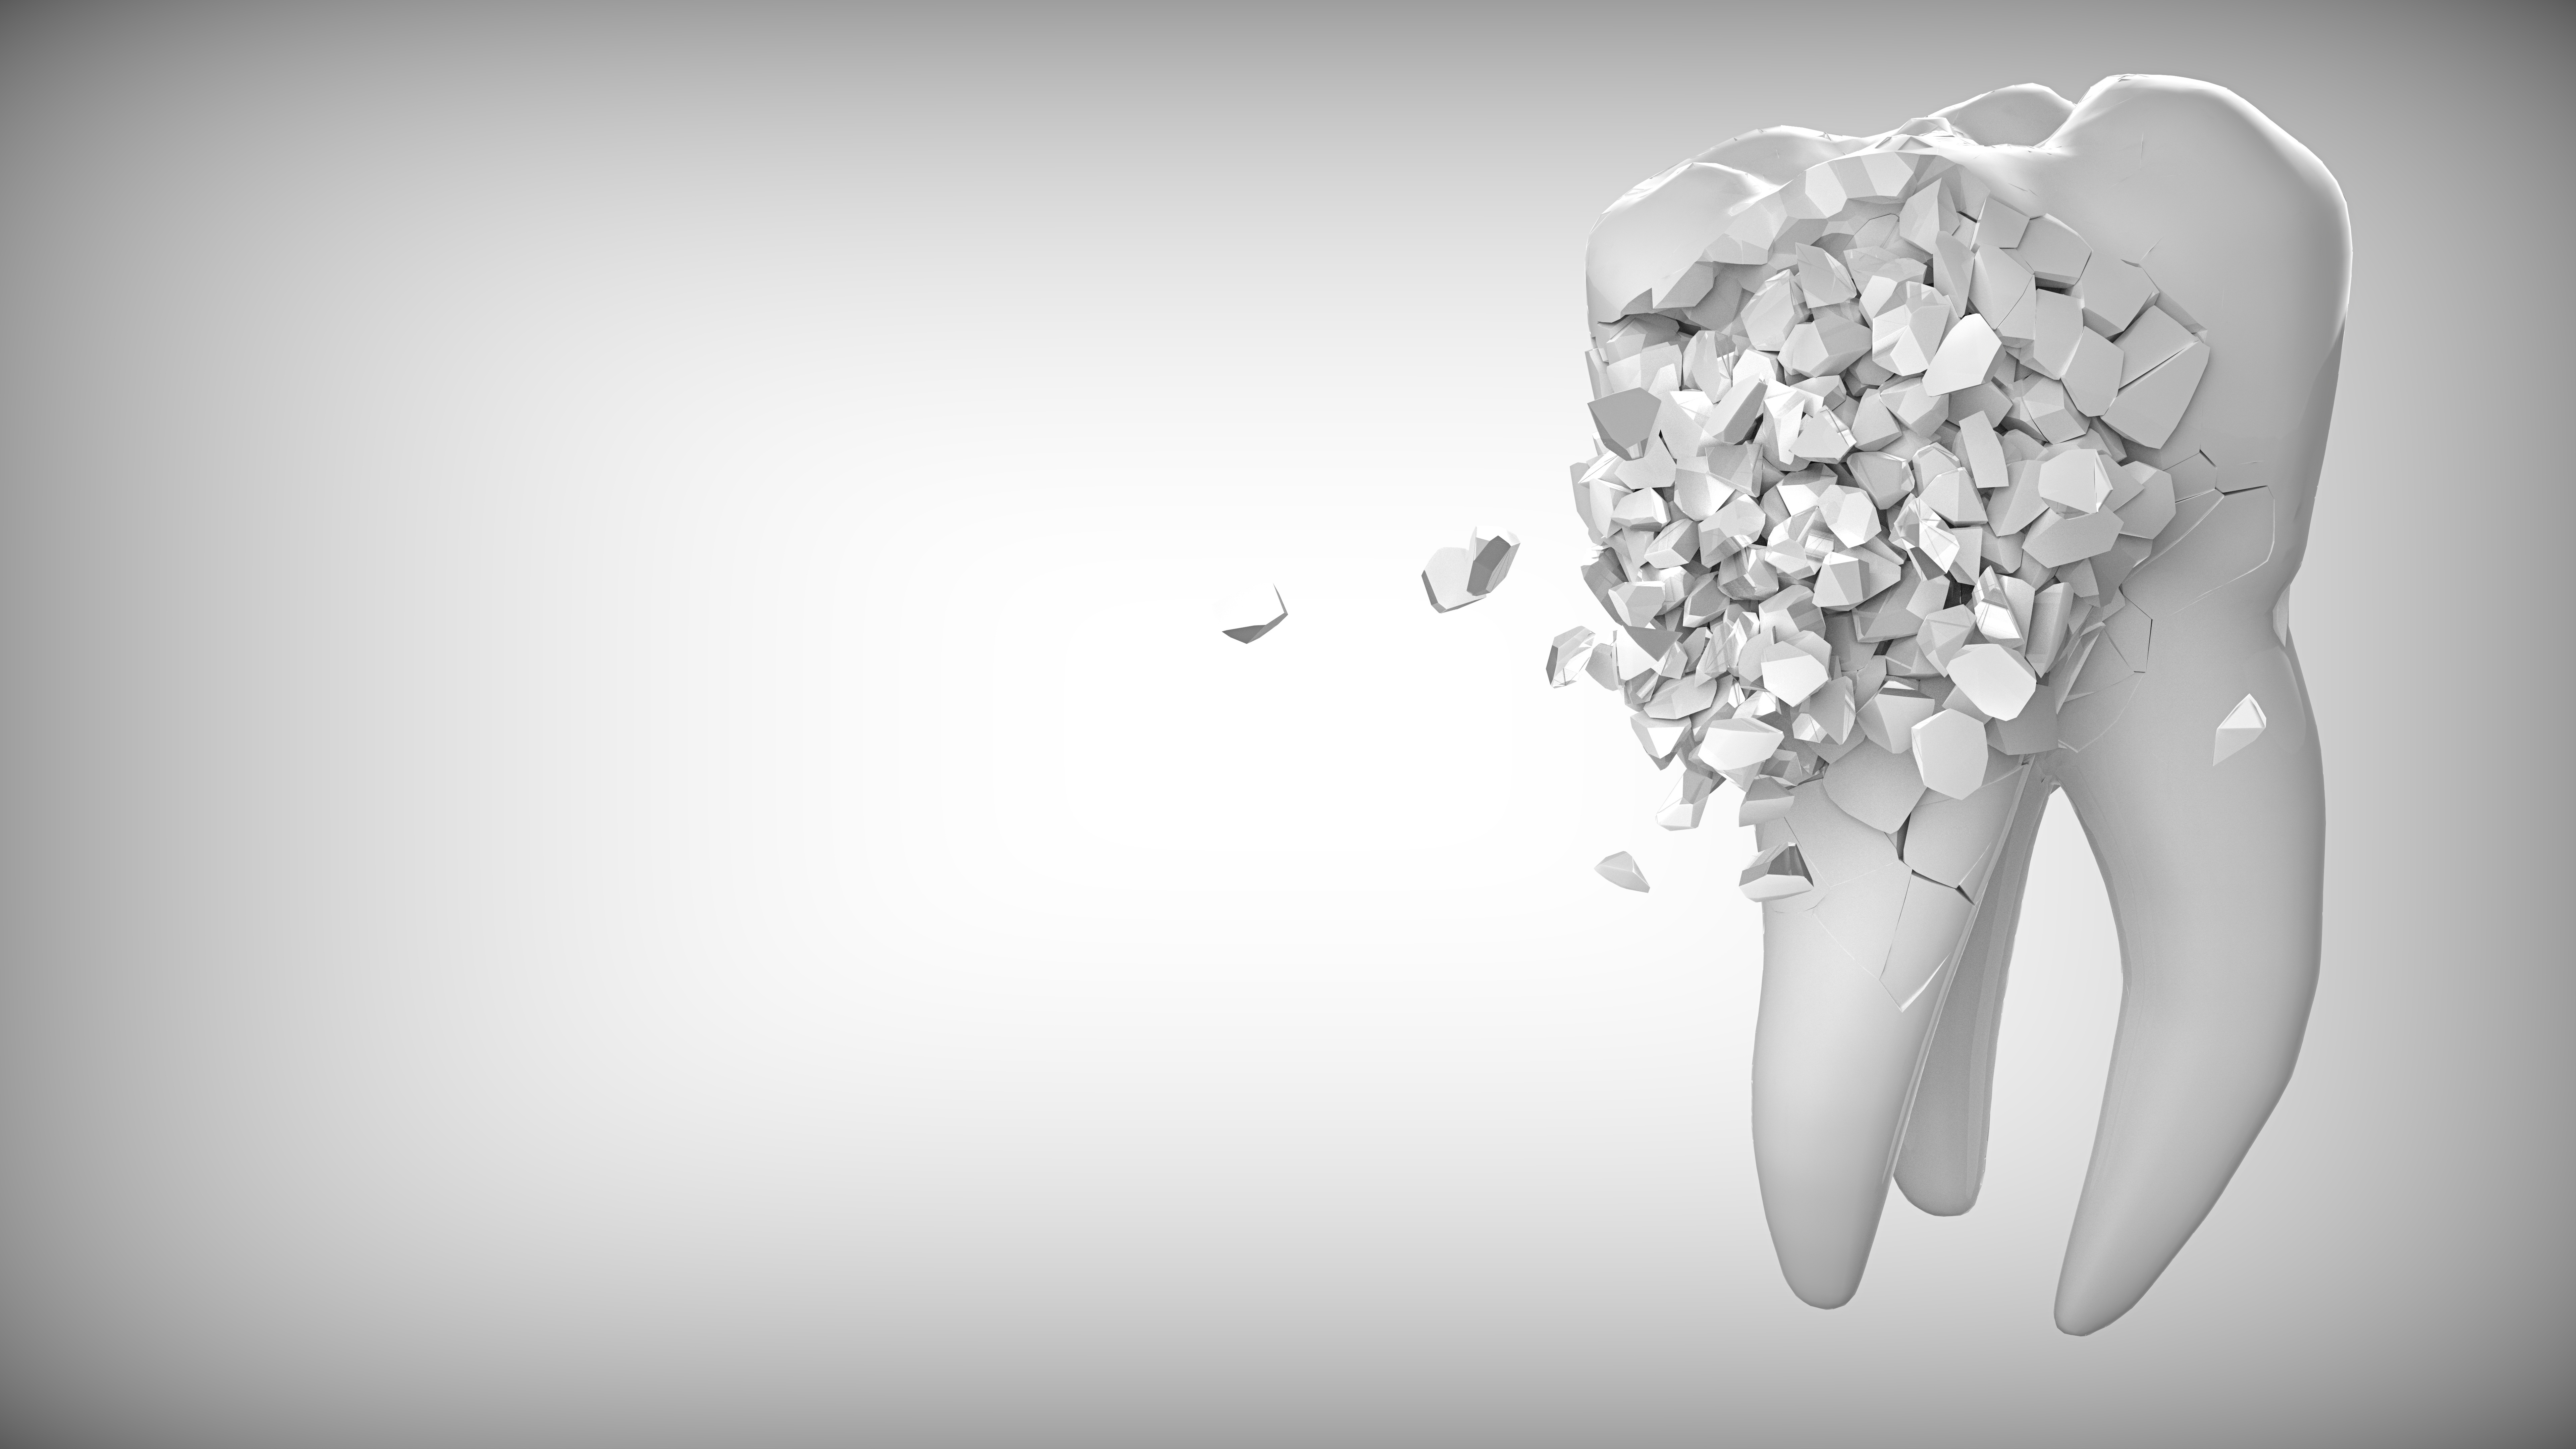 tooth creative art 8k, hd creative, 4k wallpapers, images